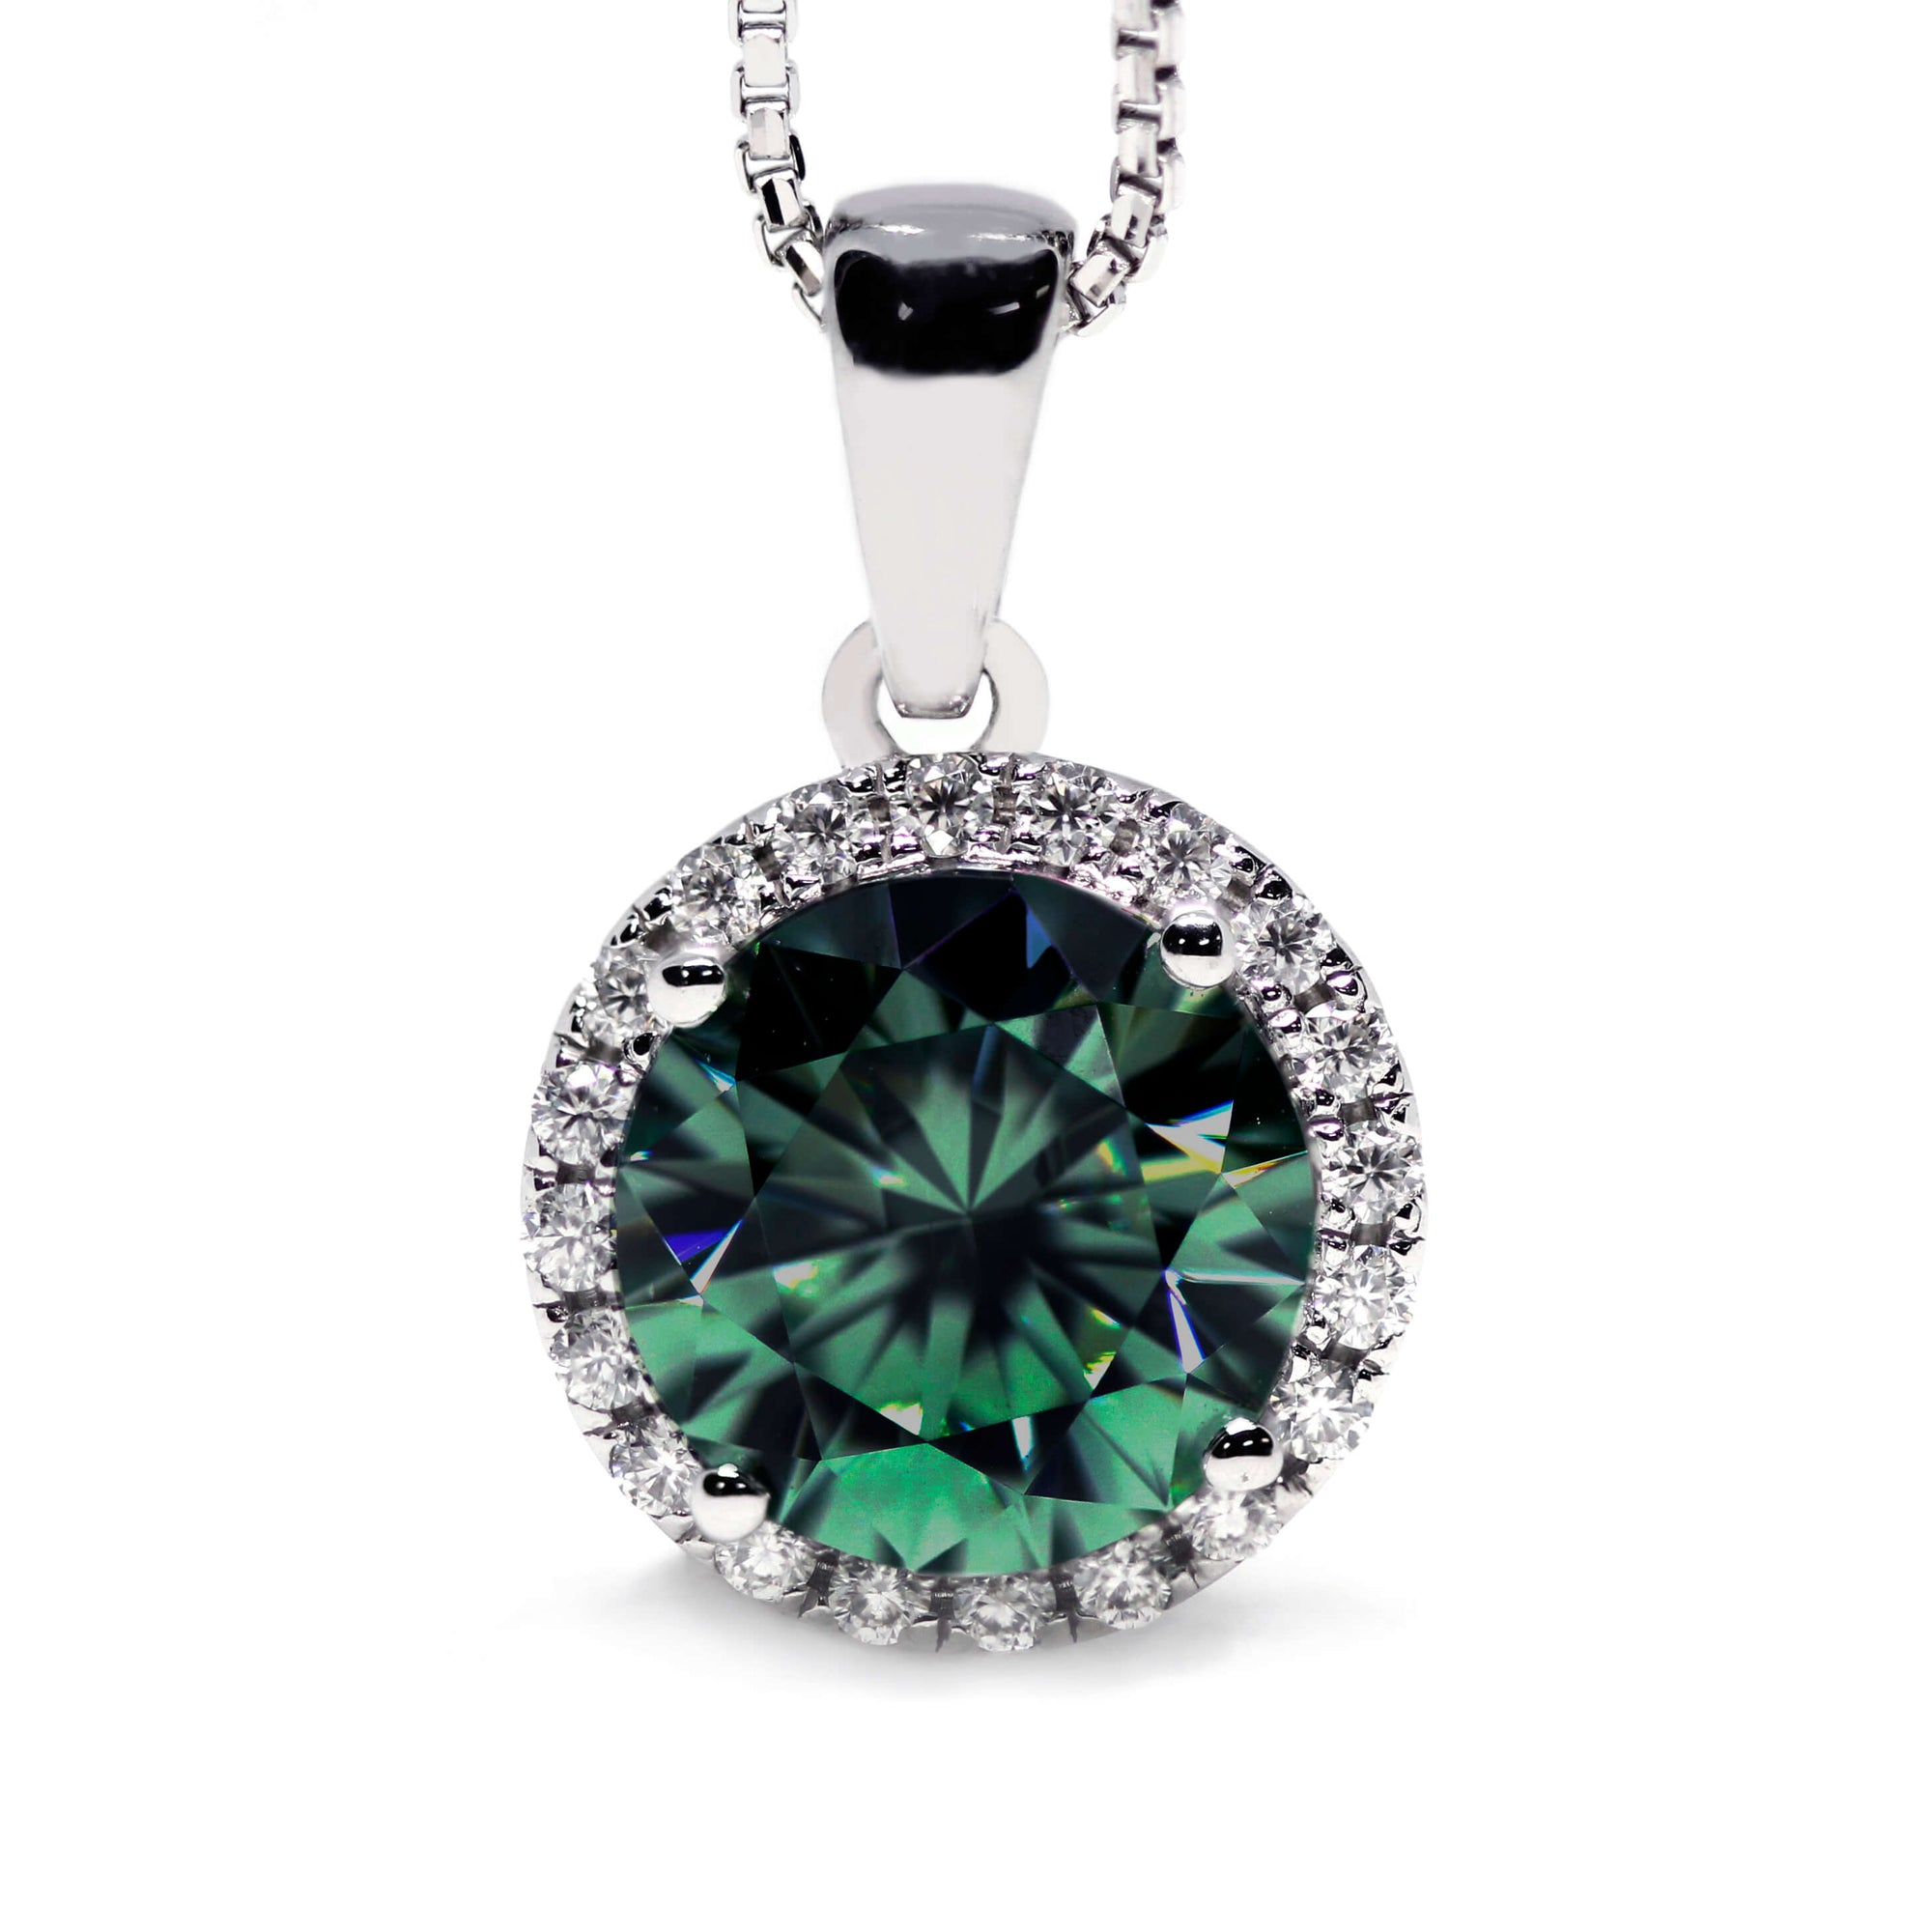 2 Carat Dark Green Moissanite Round Halo 18K Gold Pendant - Lecaine Gems Moissanite